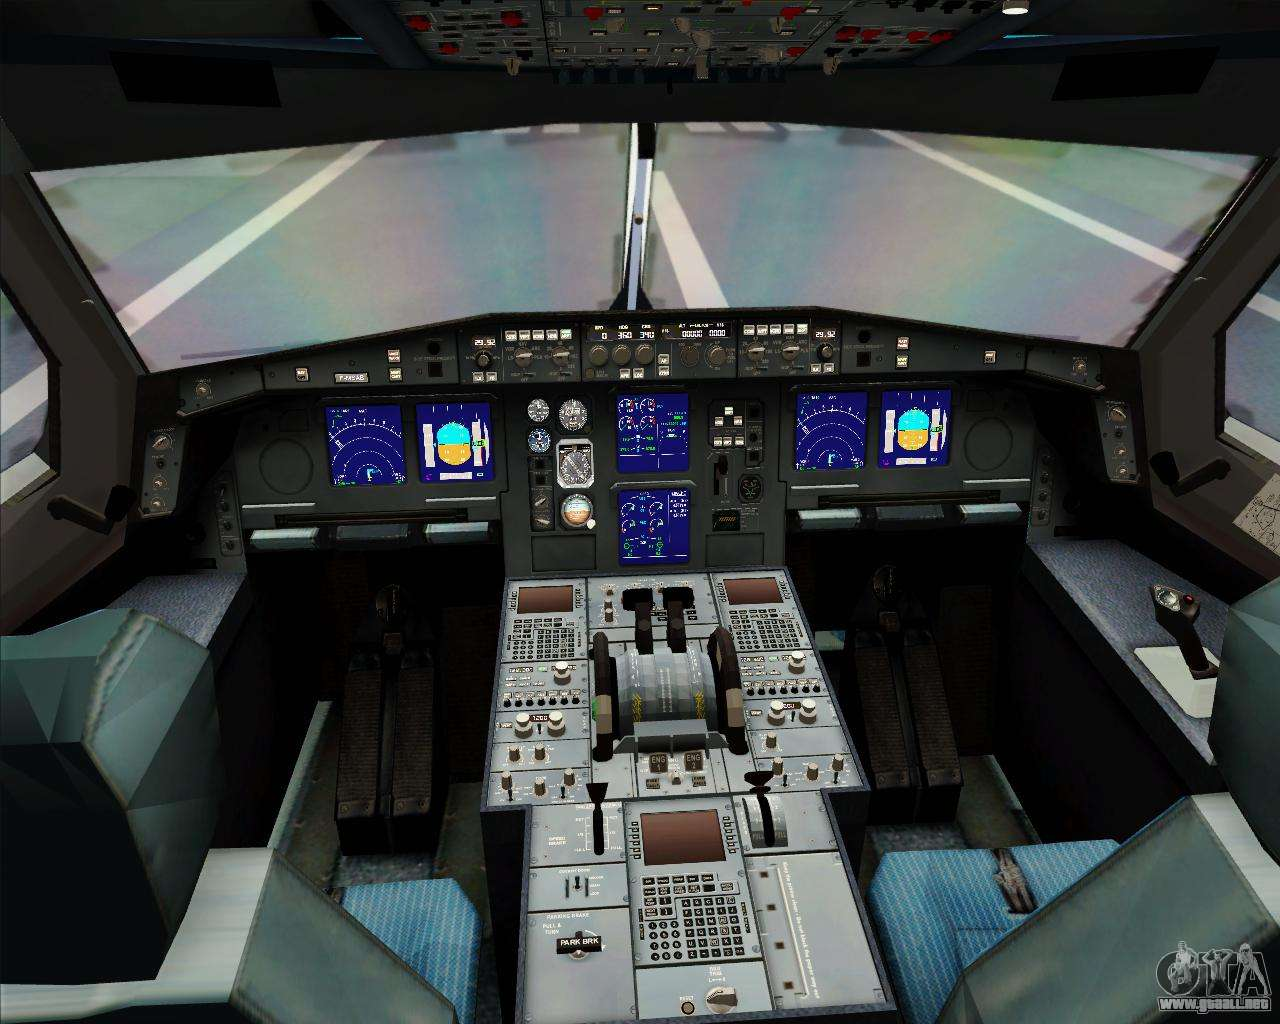 Codigos Gta 5 No Xbox 360 further Grand Theft Auto V further Is The Business Jet Dead together with 15508 Nibiru Pla a X in addition 69486 Renault Duster Patrulla Policia Colombiana. on de aviones gta 5